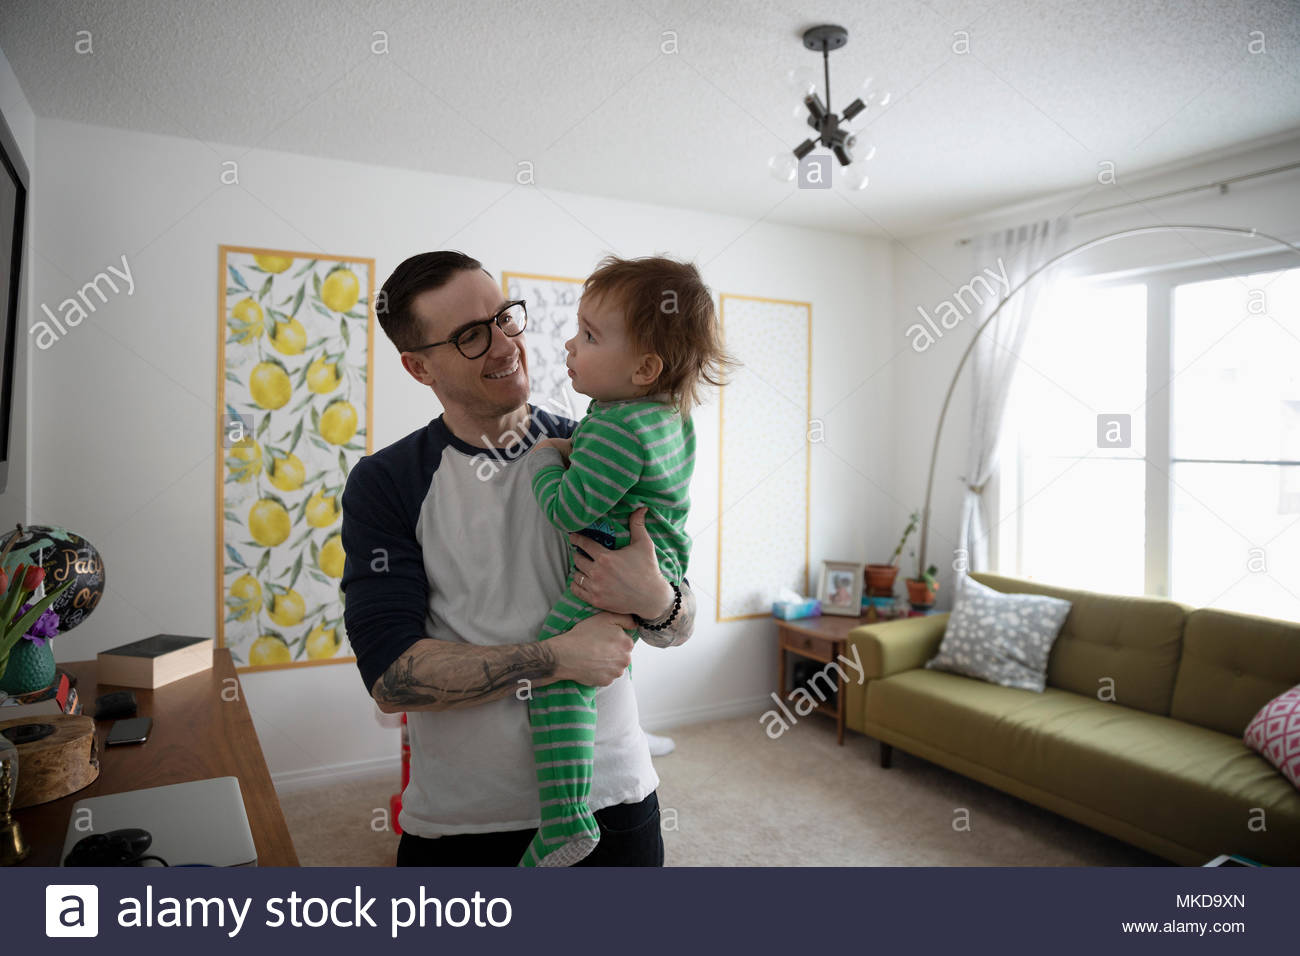 Father holding baby son in living room - Stock Image